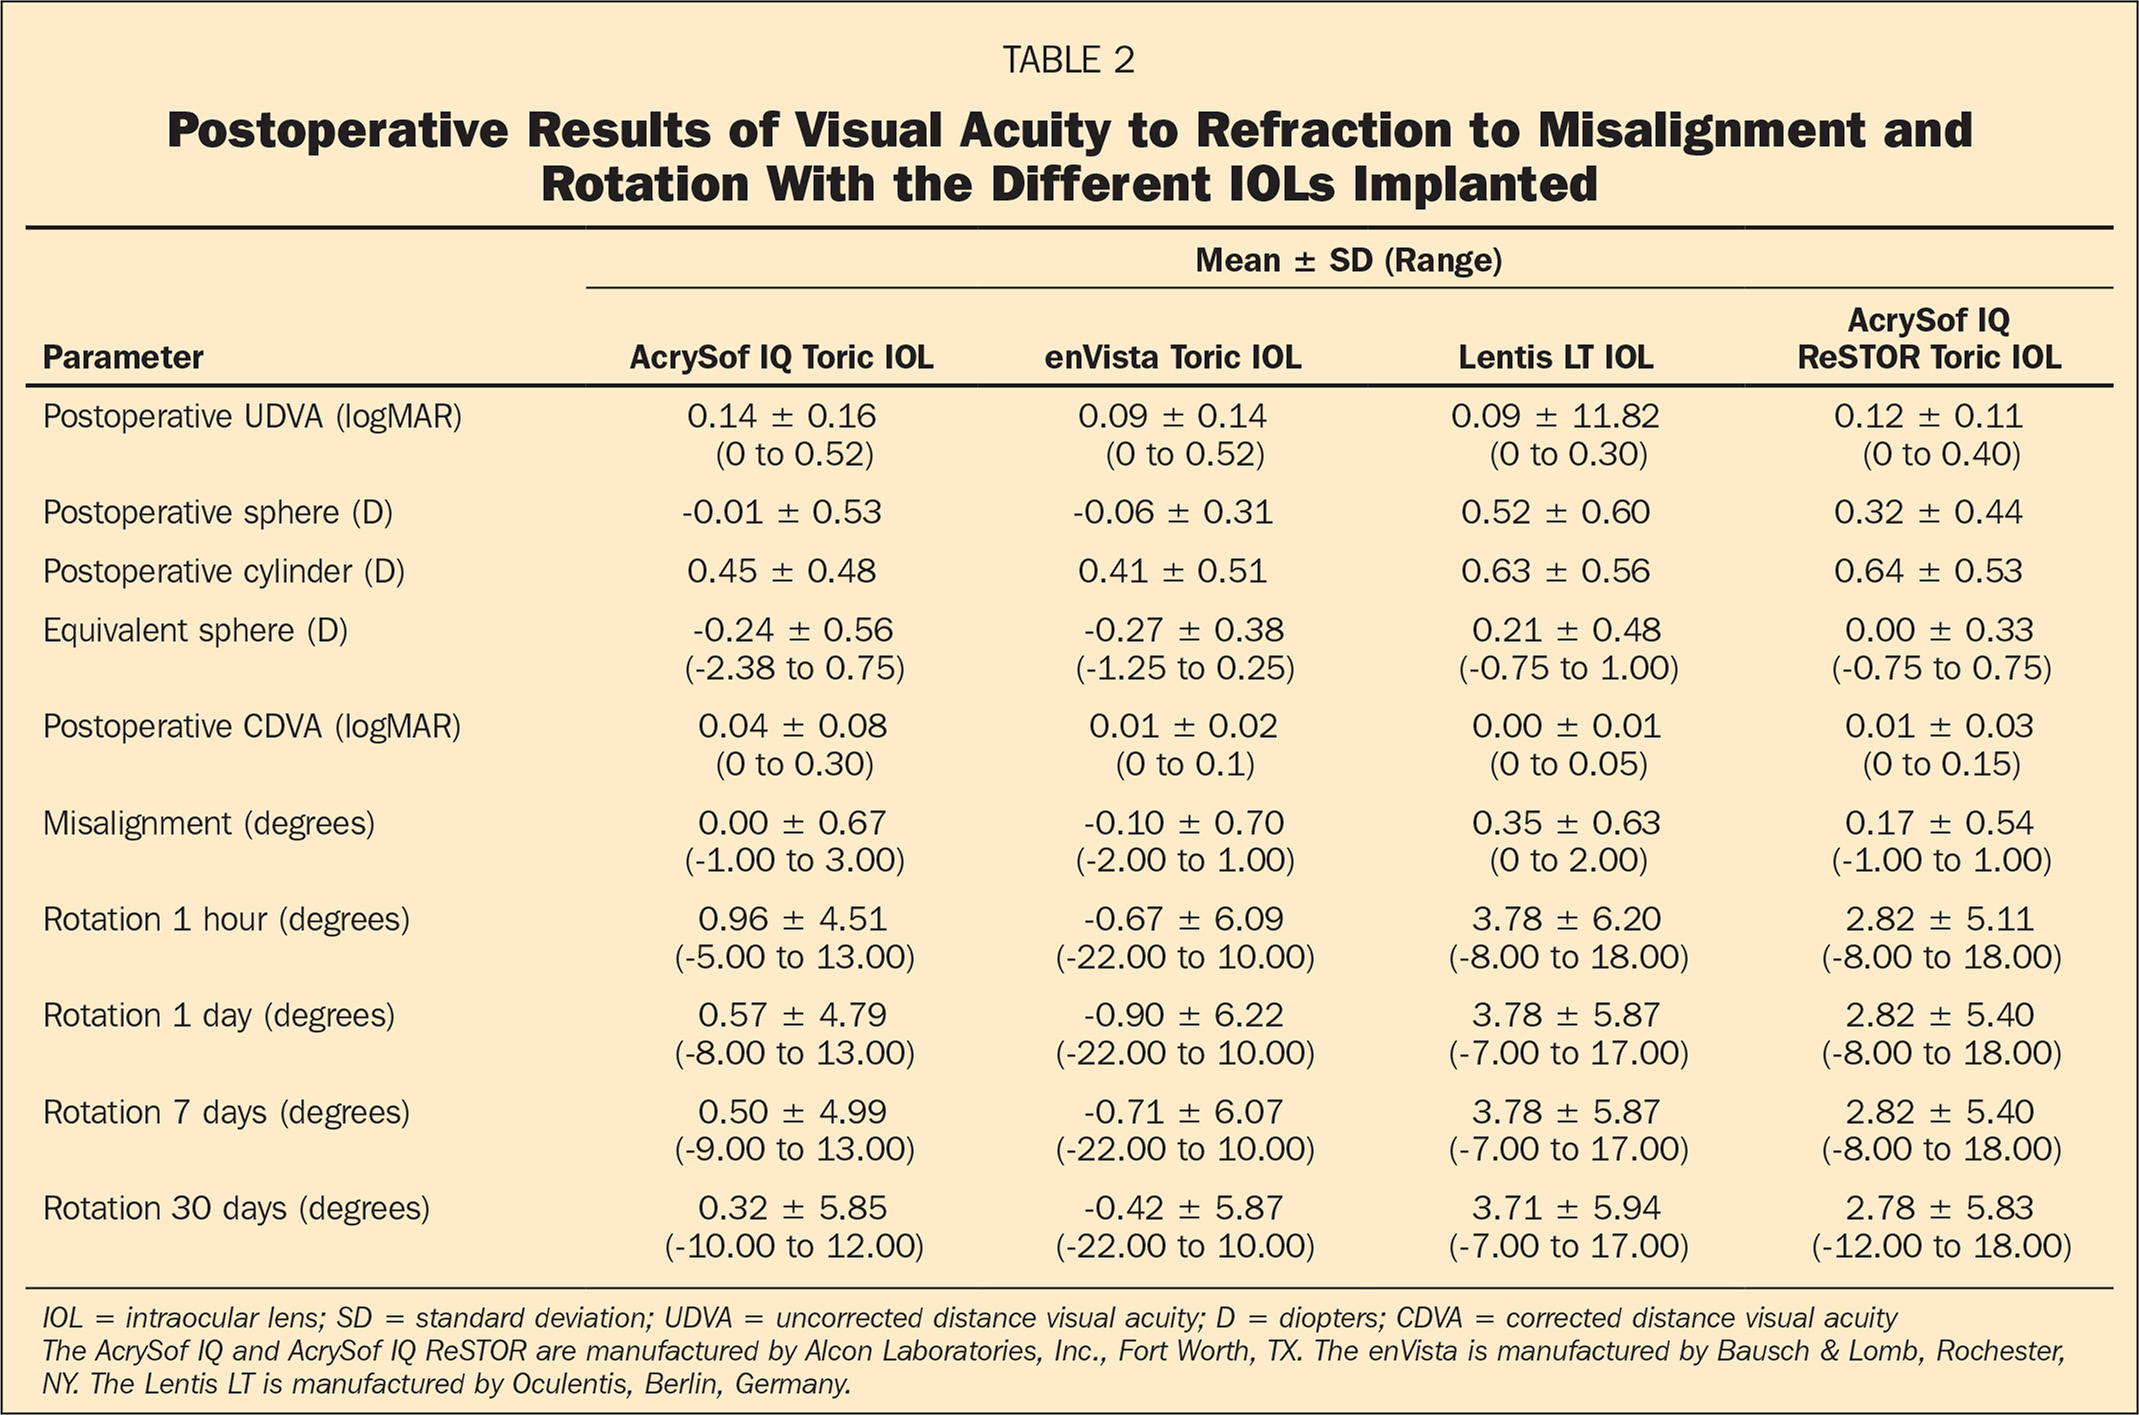 Postoperative Results of Visual Acuity to Refraction to Misalignment and Rotation With the Different IOLs Implanted